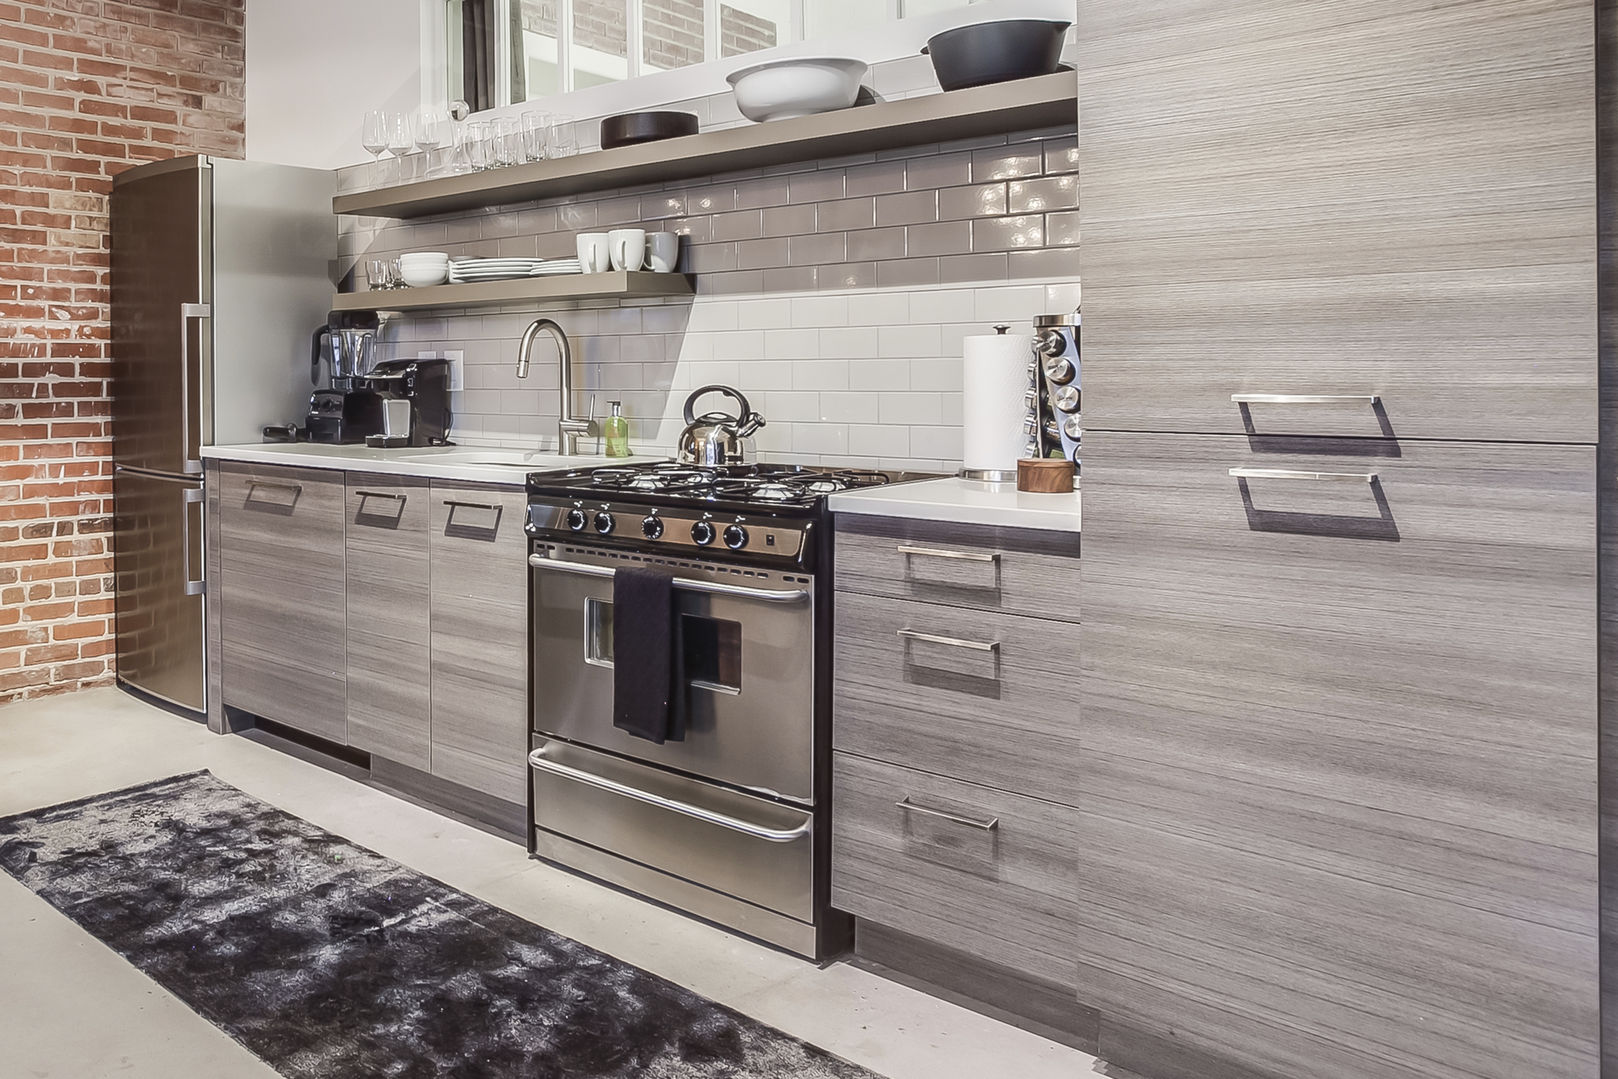 Cozy Kitchen with Fridge and Oven in Sears Loft